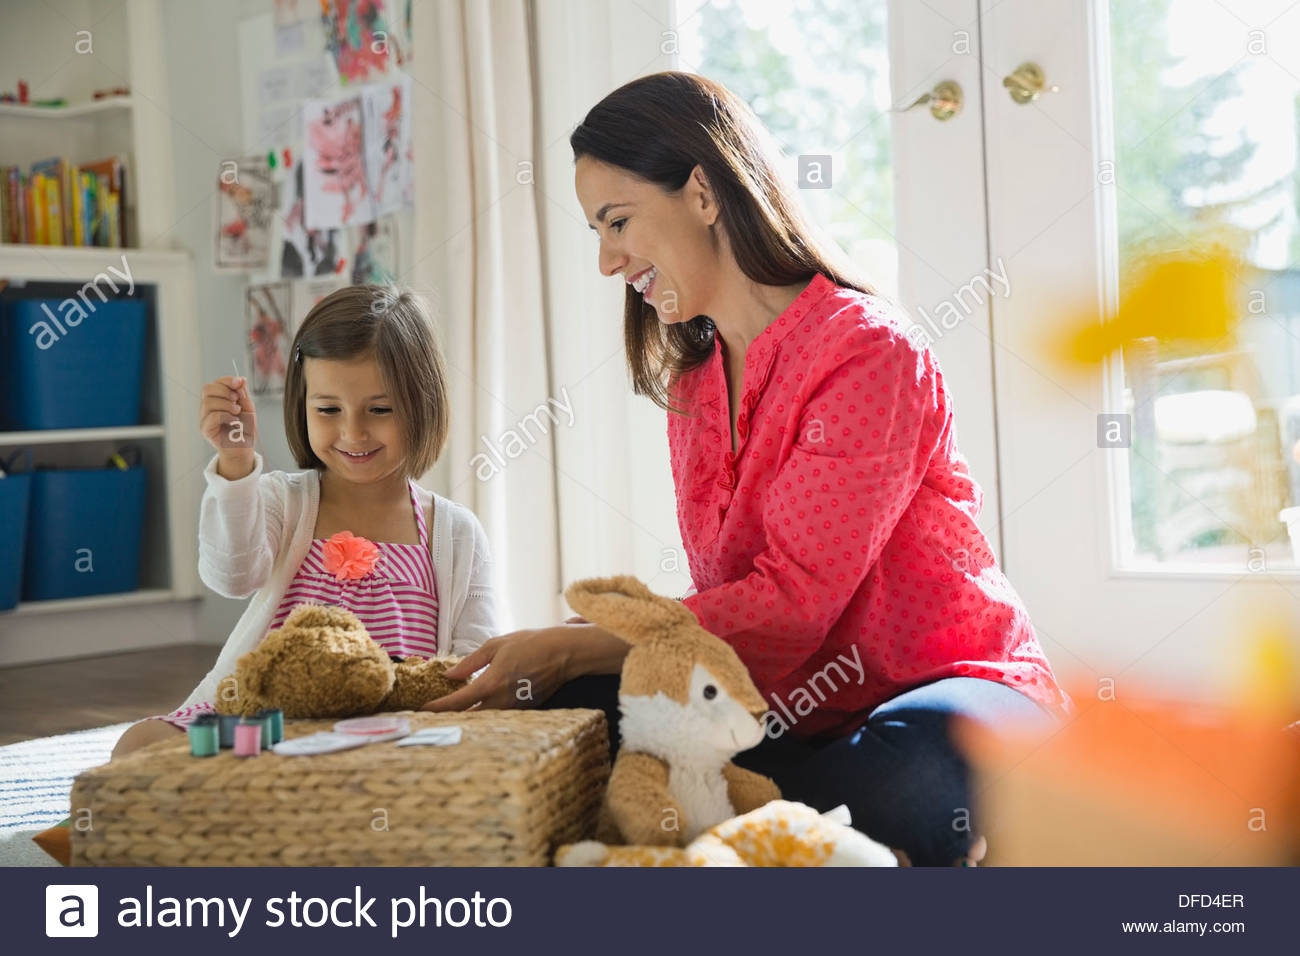 Mother supervising daughter sewing teddy bear at home - Stock Image